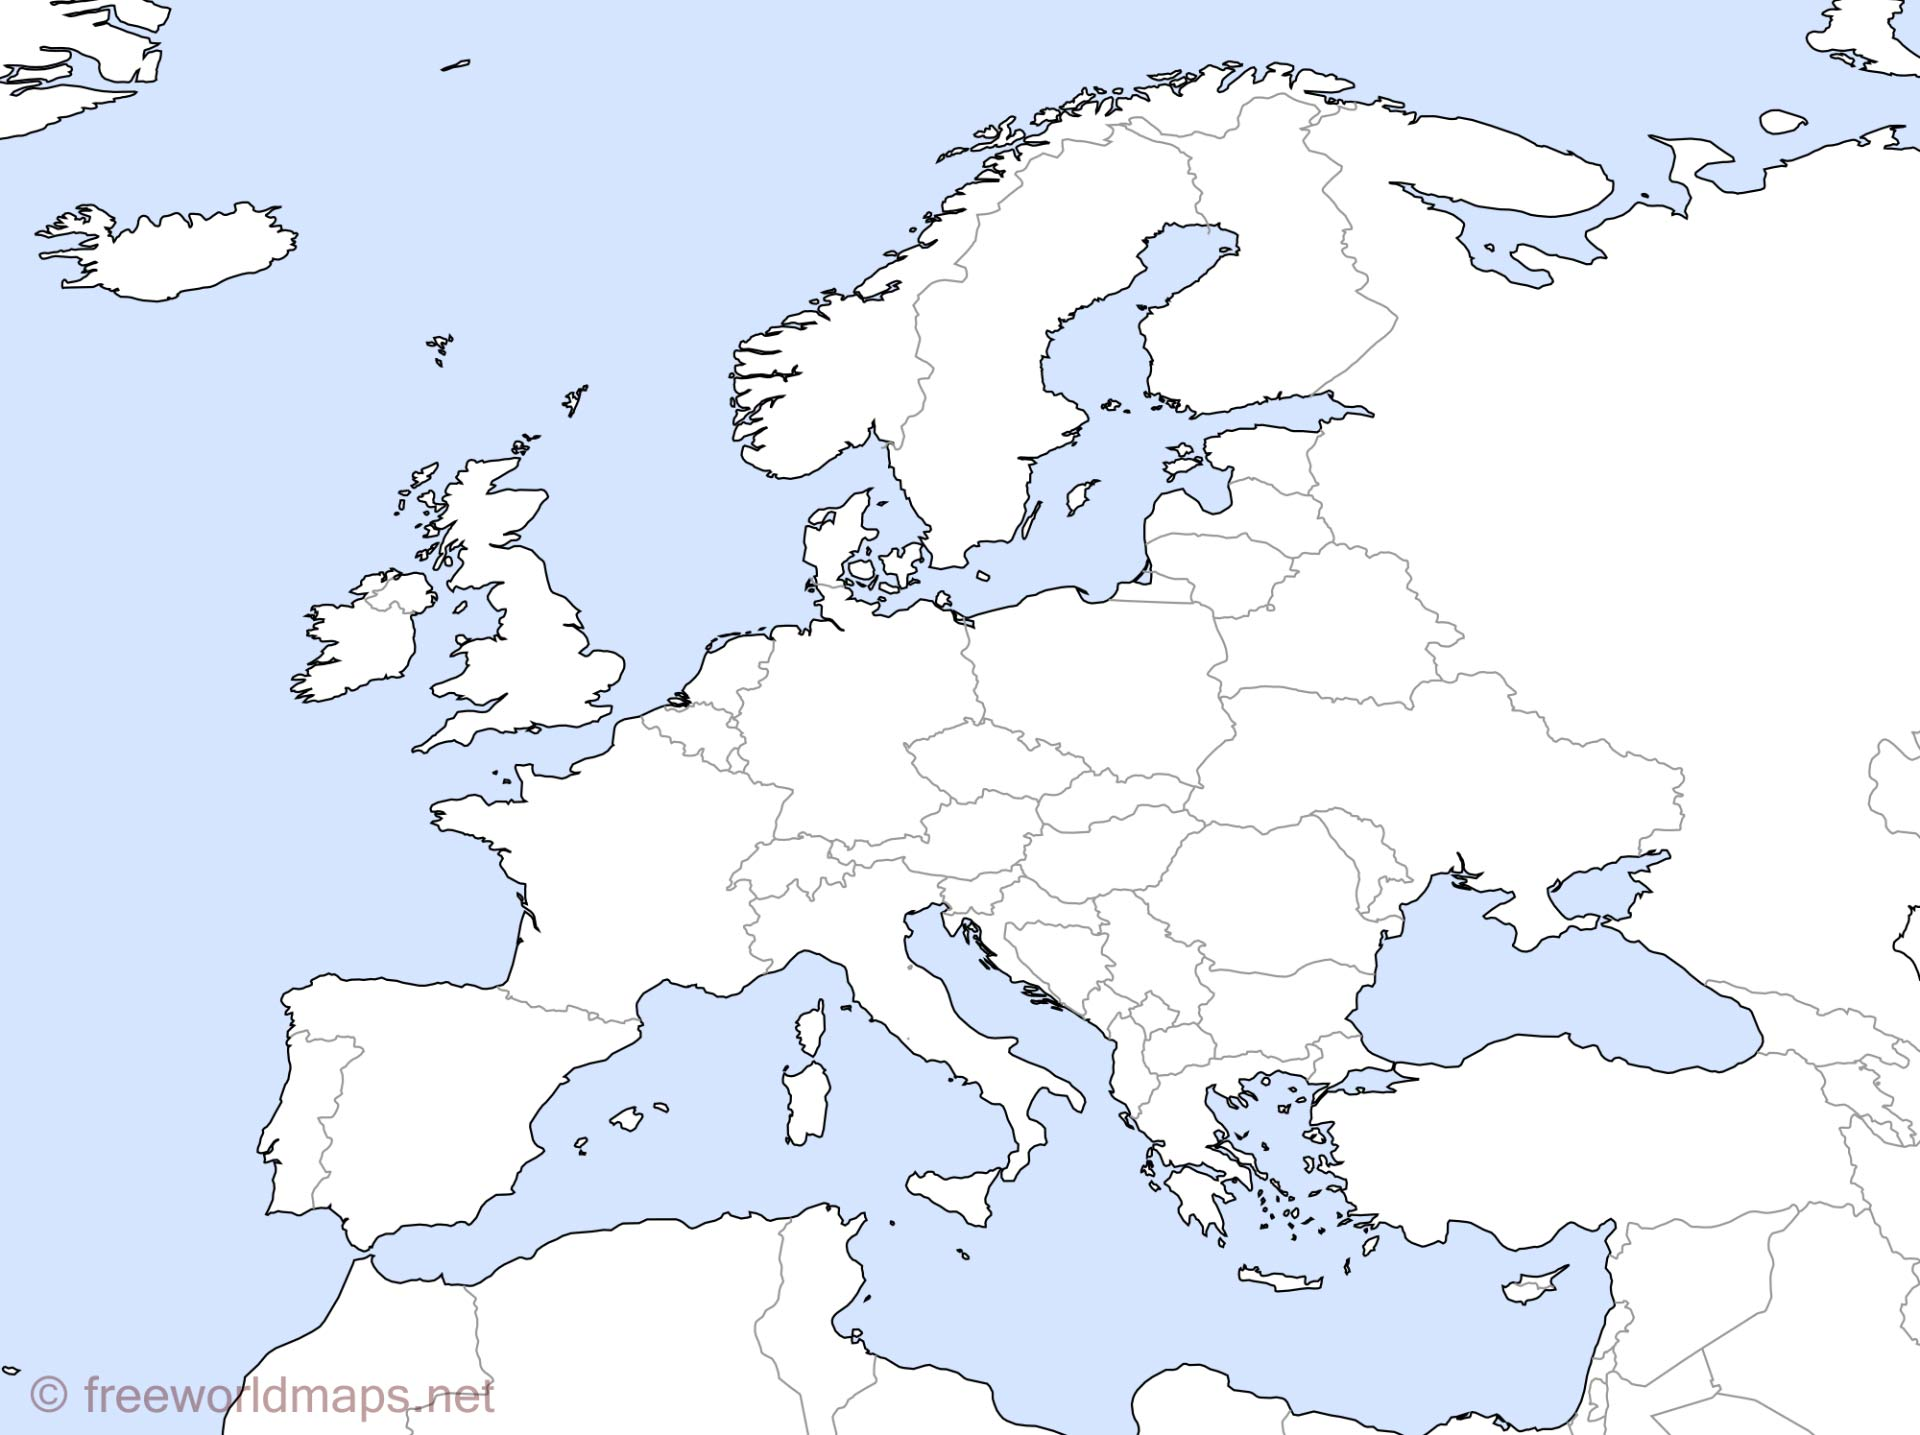 Europe Outline Maps